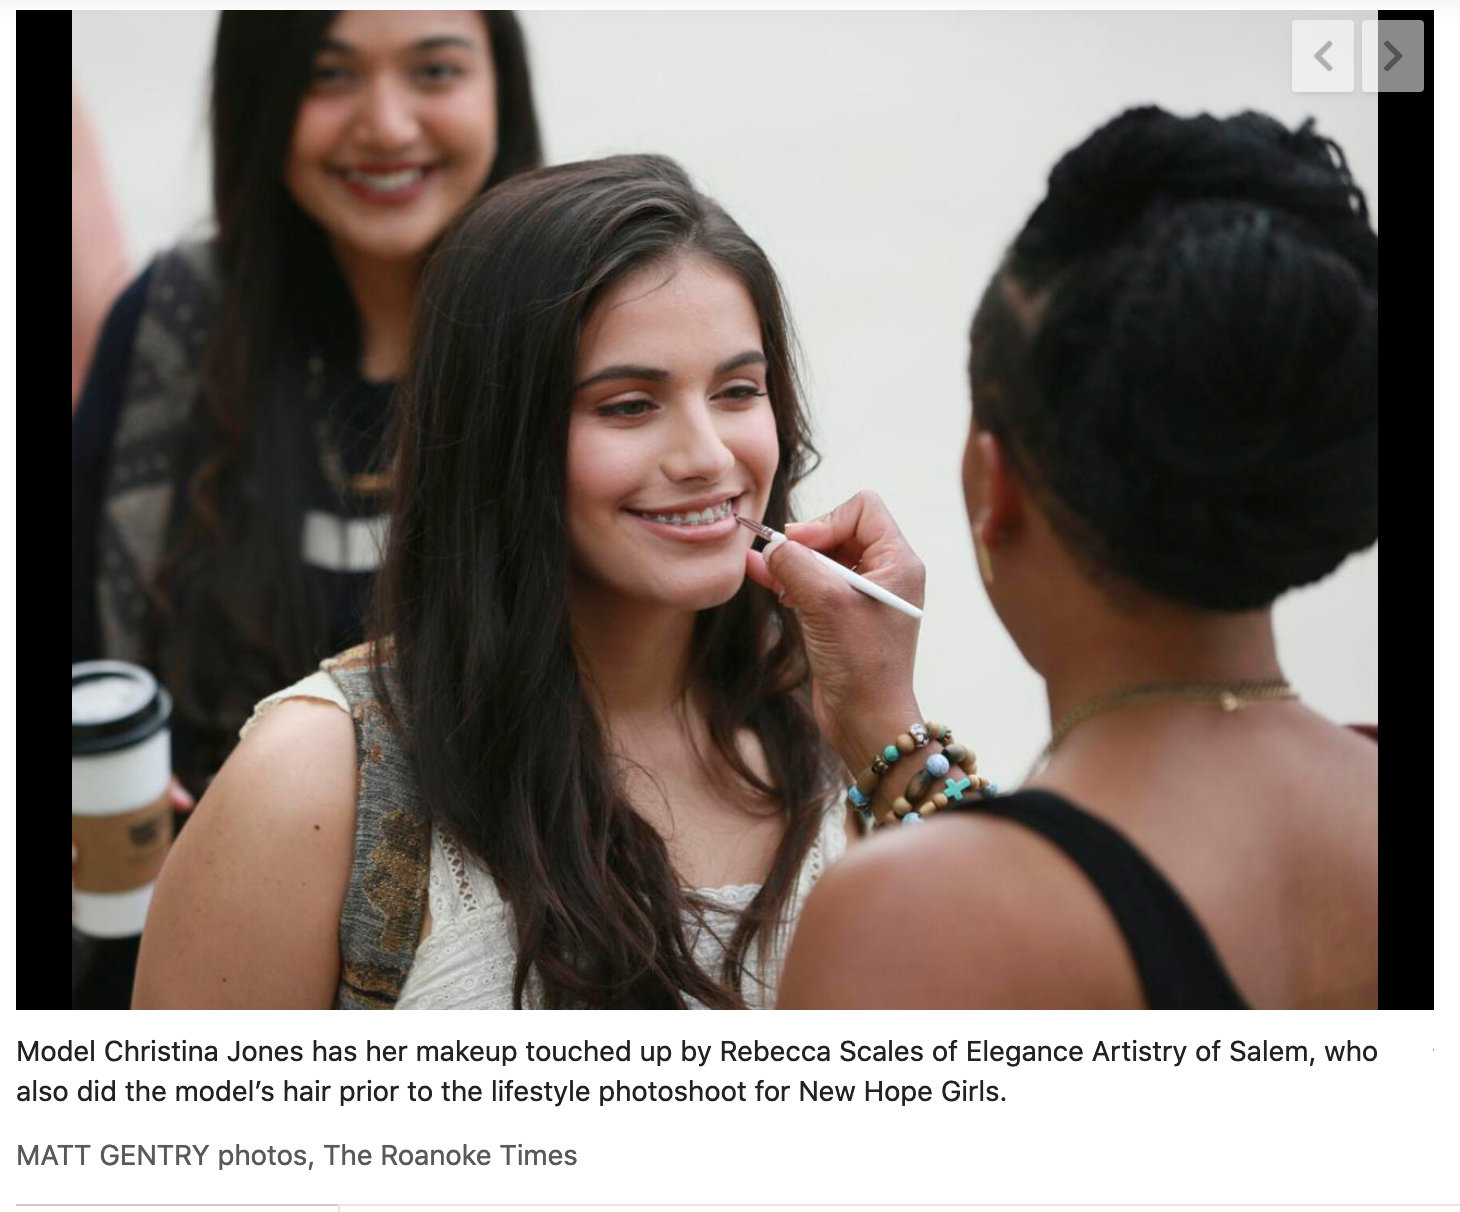 Photo from The Roanoke Times article about the New Hope Girls photo shoot.